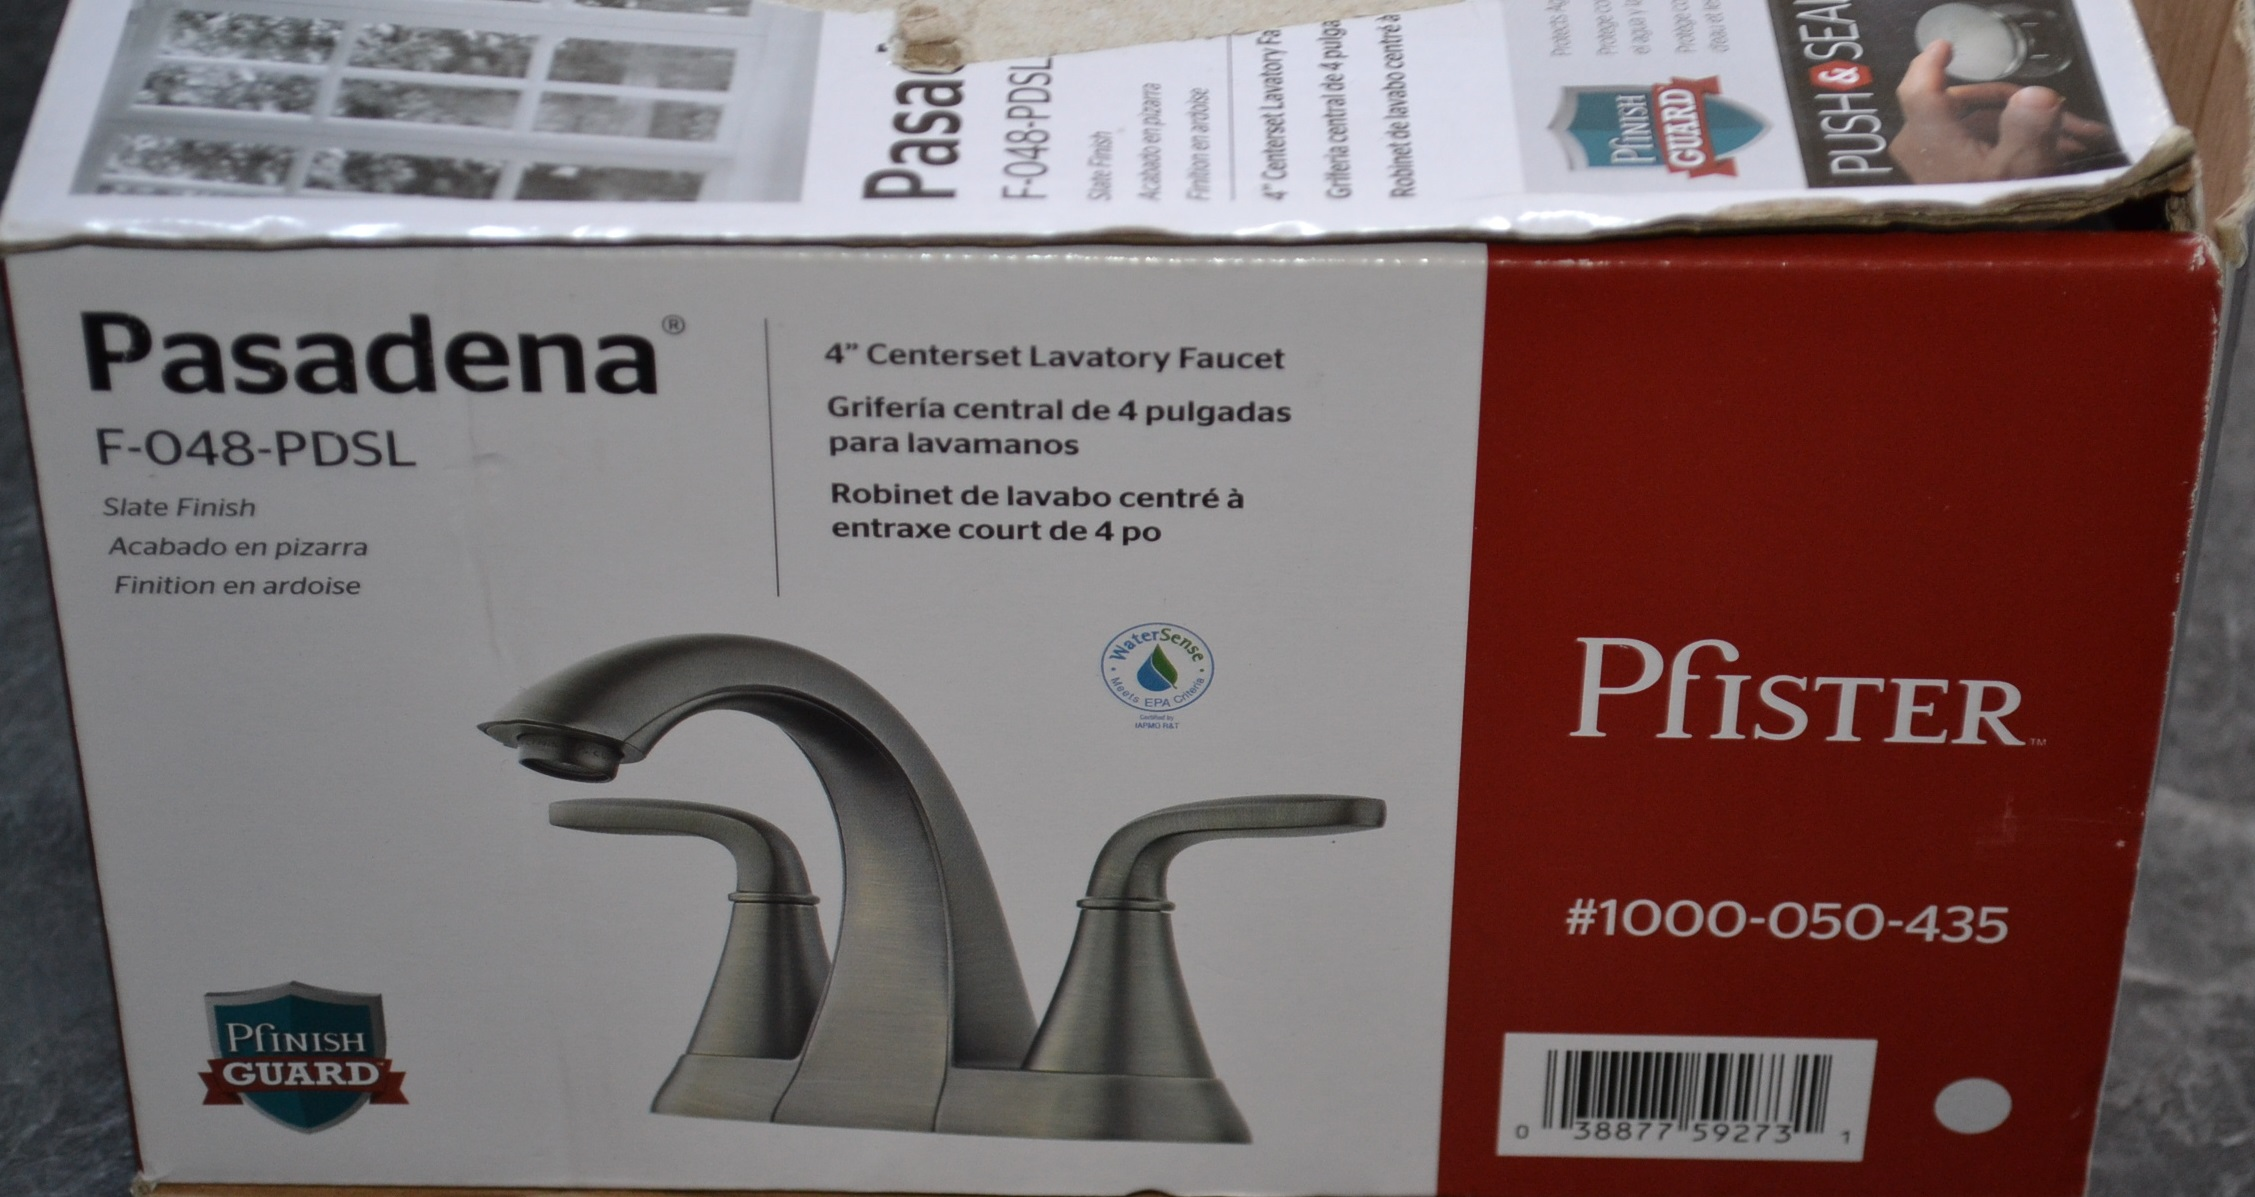 7 Faucet Finishes For Fabulous Bathrooms: F-048-PDSL Pasadena 4 In. Centerset 2-HANDLE HIGH-ARC